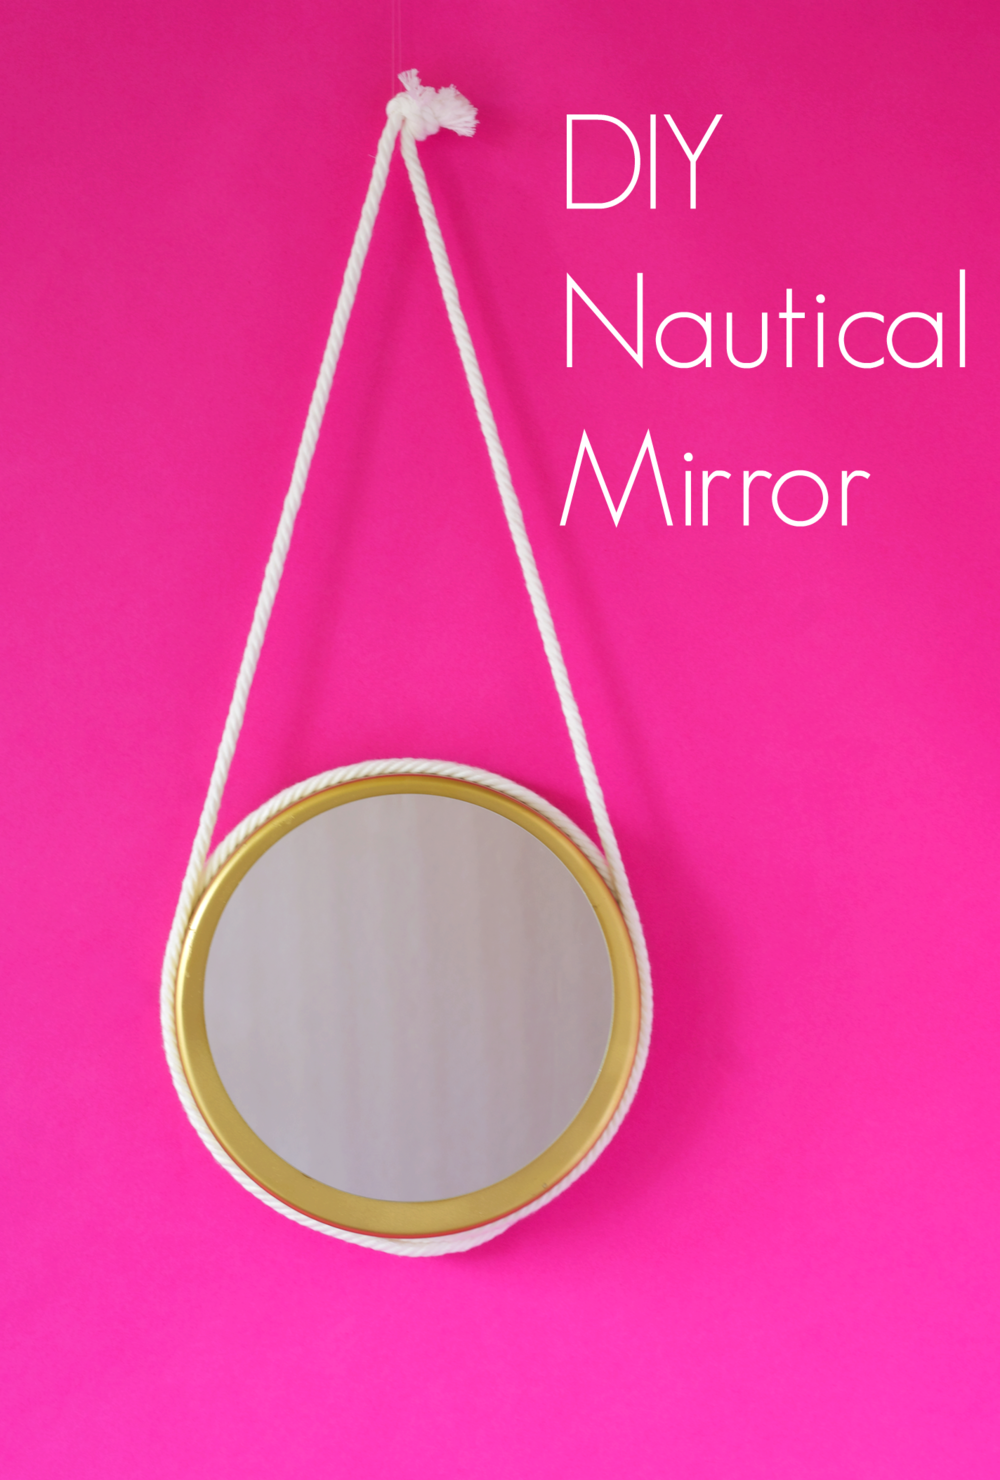 DIY Nautical Mirror from a baking pan via A Charming Project